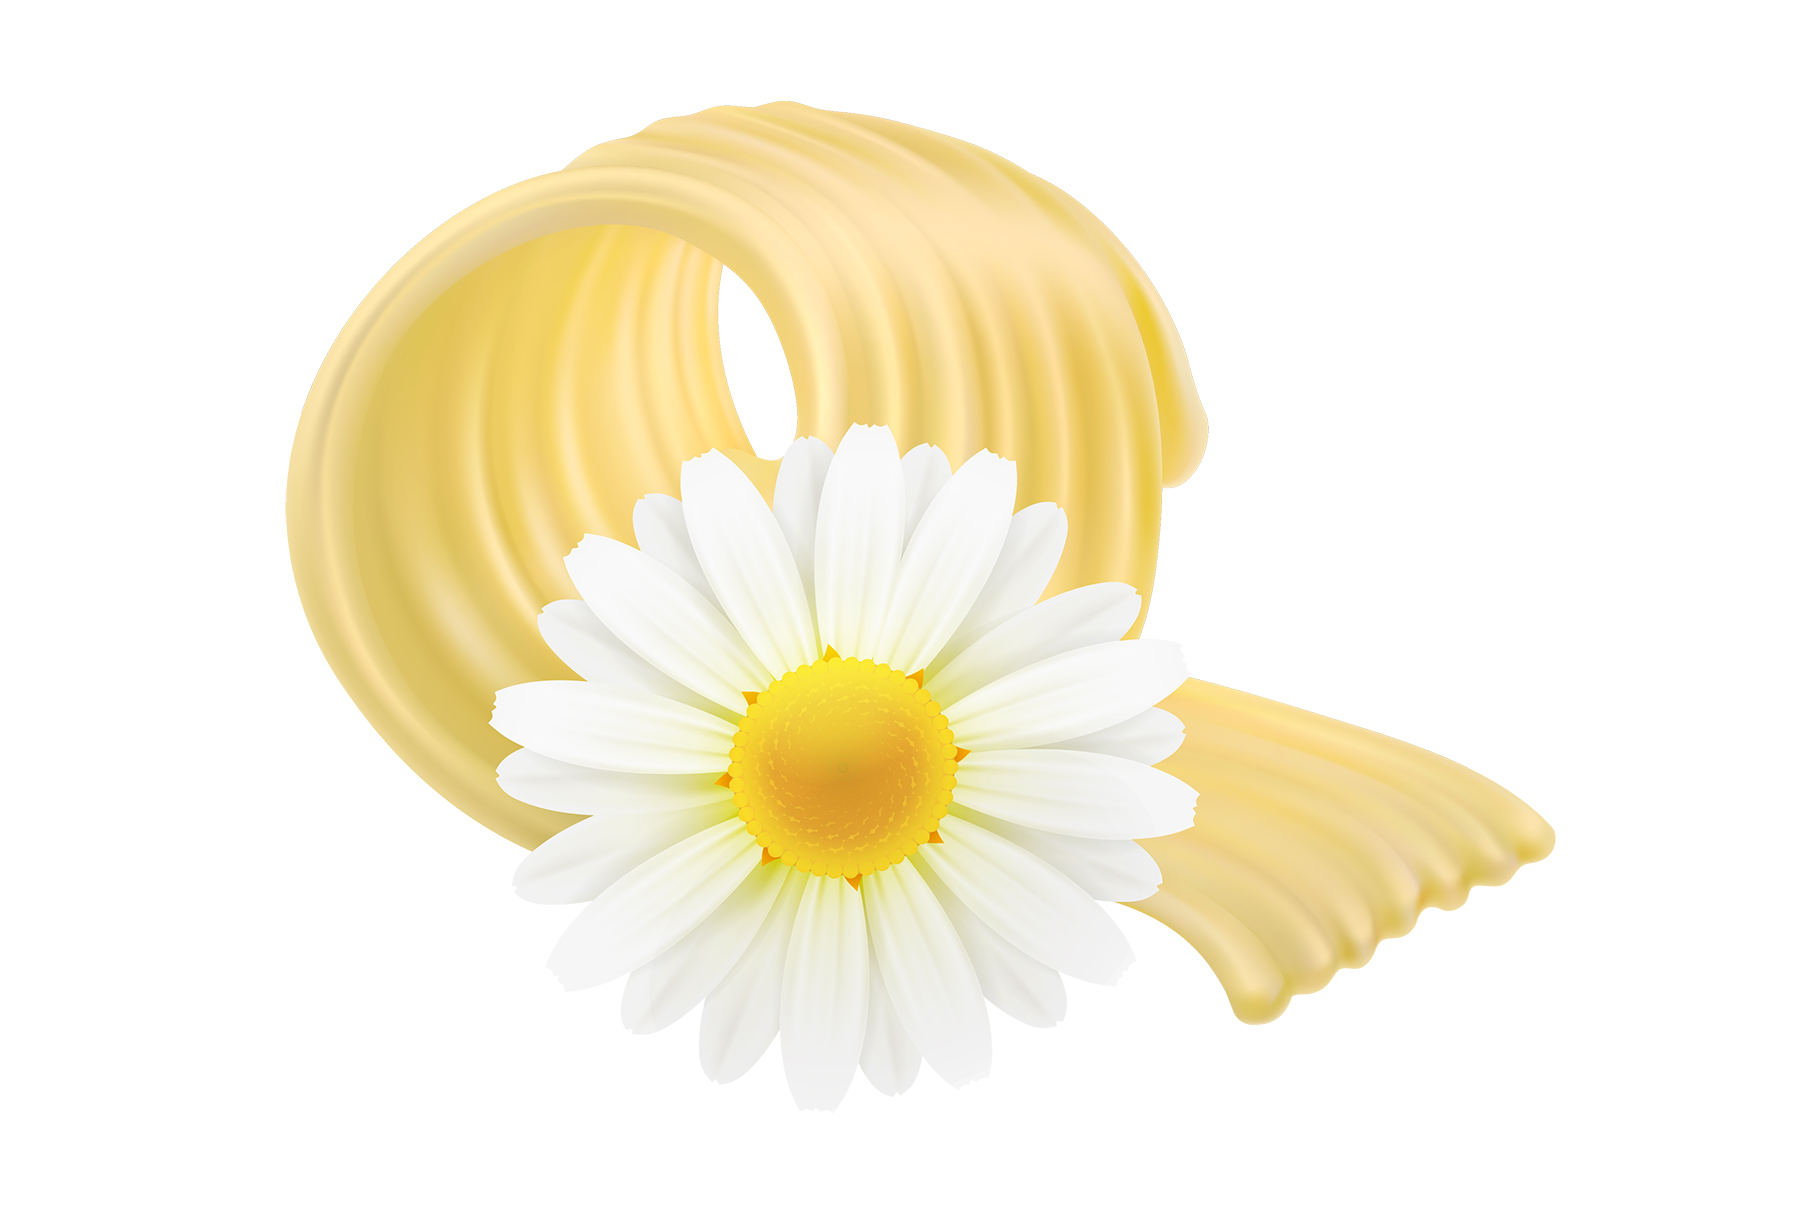 Butter. Milk farm. Whipped cream. Bio dairy products. Vector example image 4